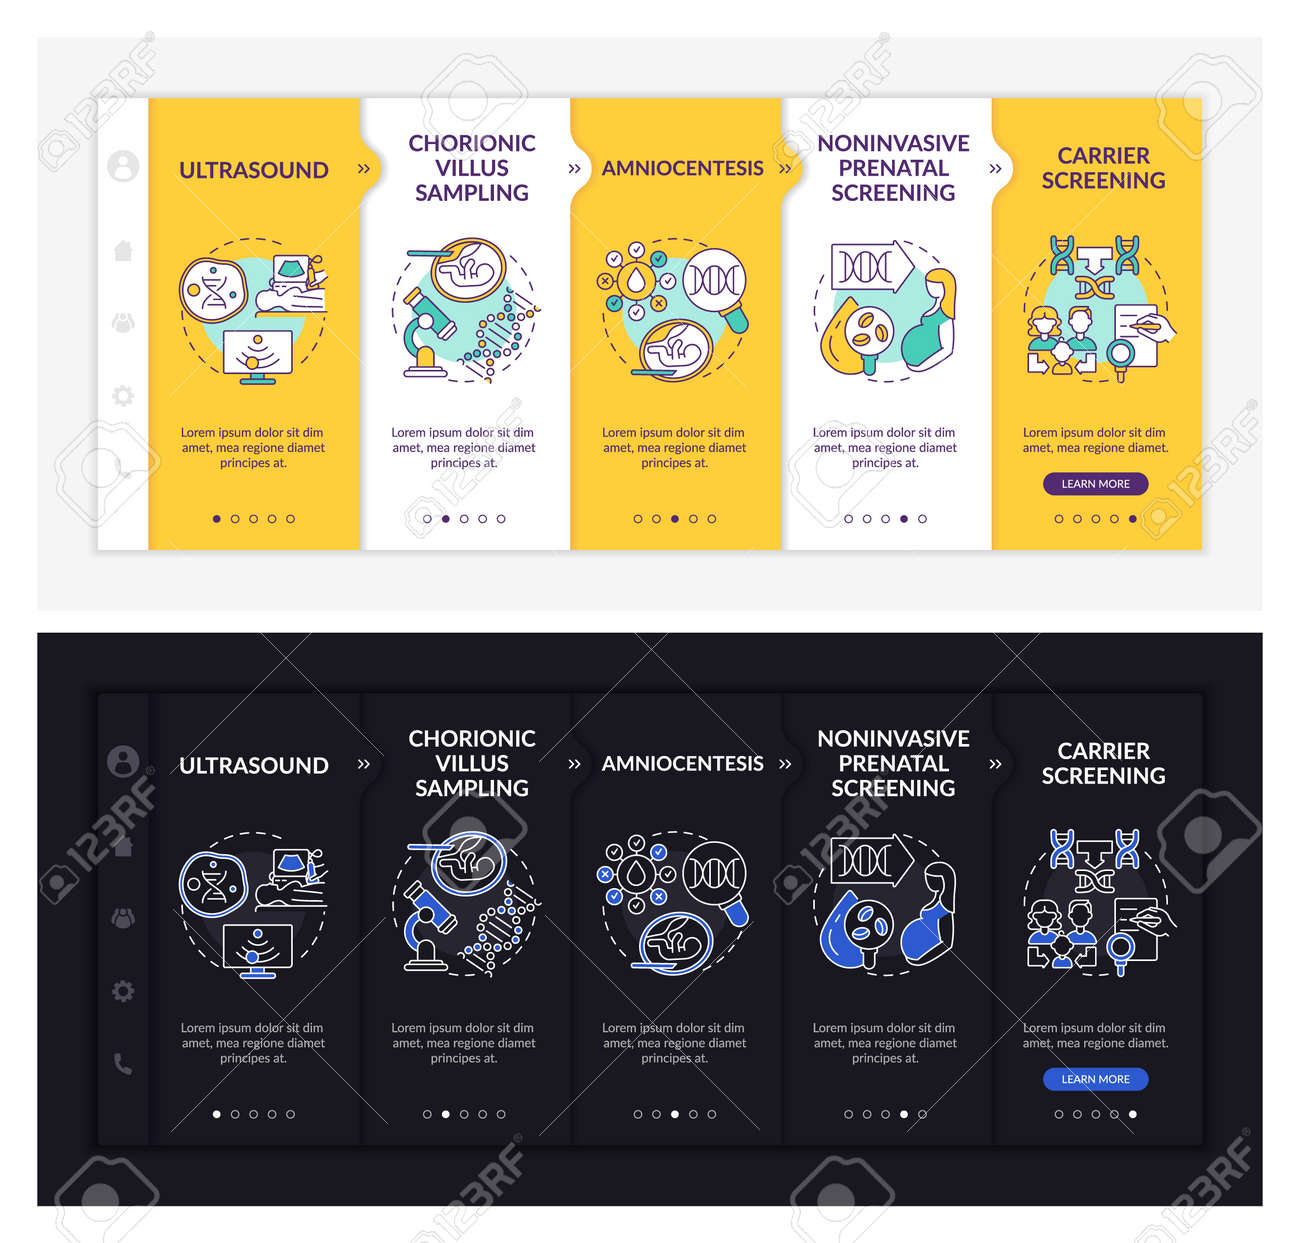 Genetic diseases diagnostics onboarding vector template. Responsive mobile website with icons. Web page walkthrough 5 step screens. Illness dark, light mode concept with linear illustrations - 168827853